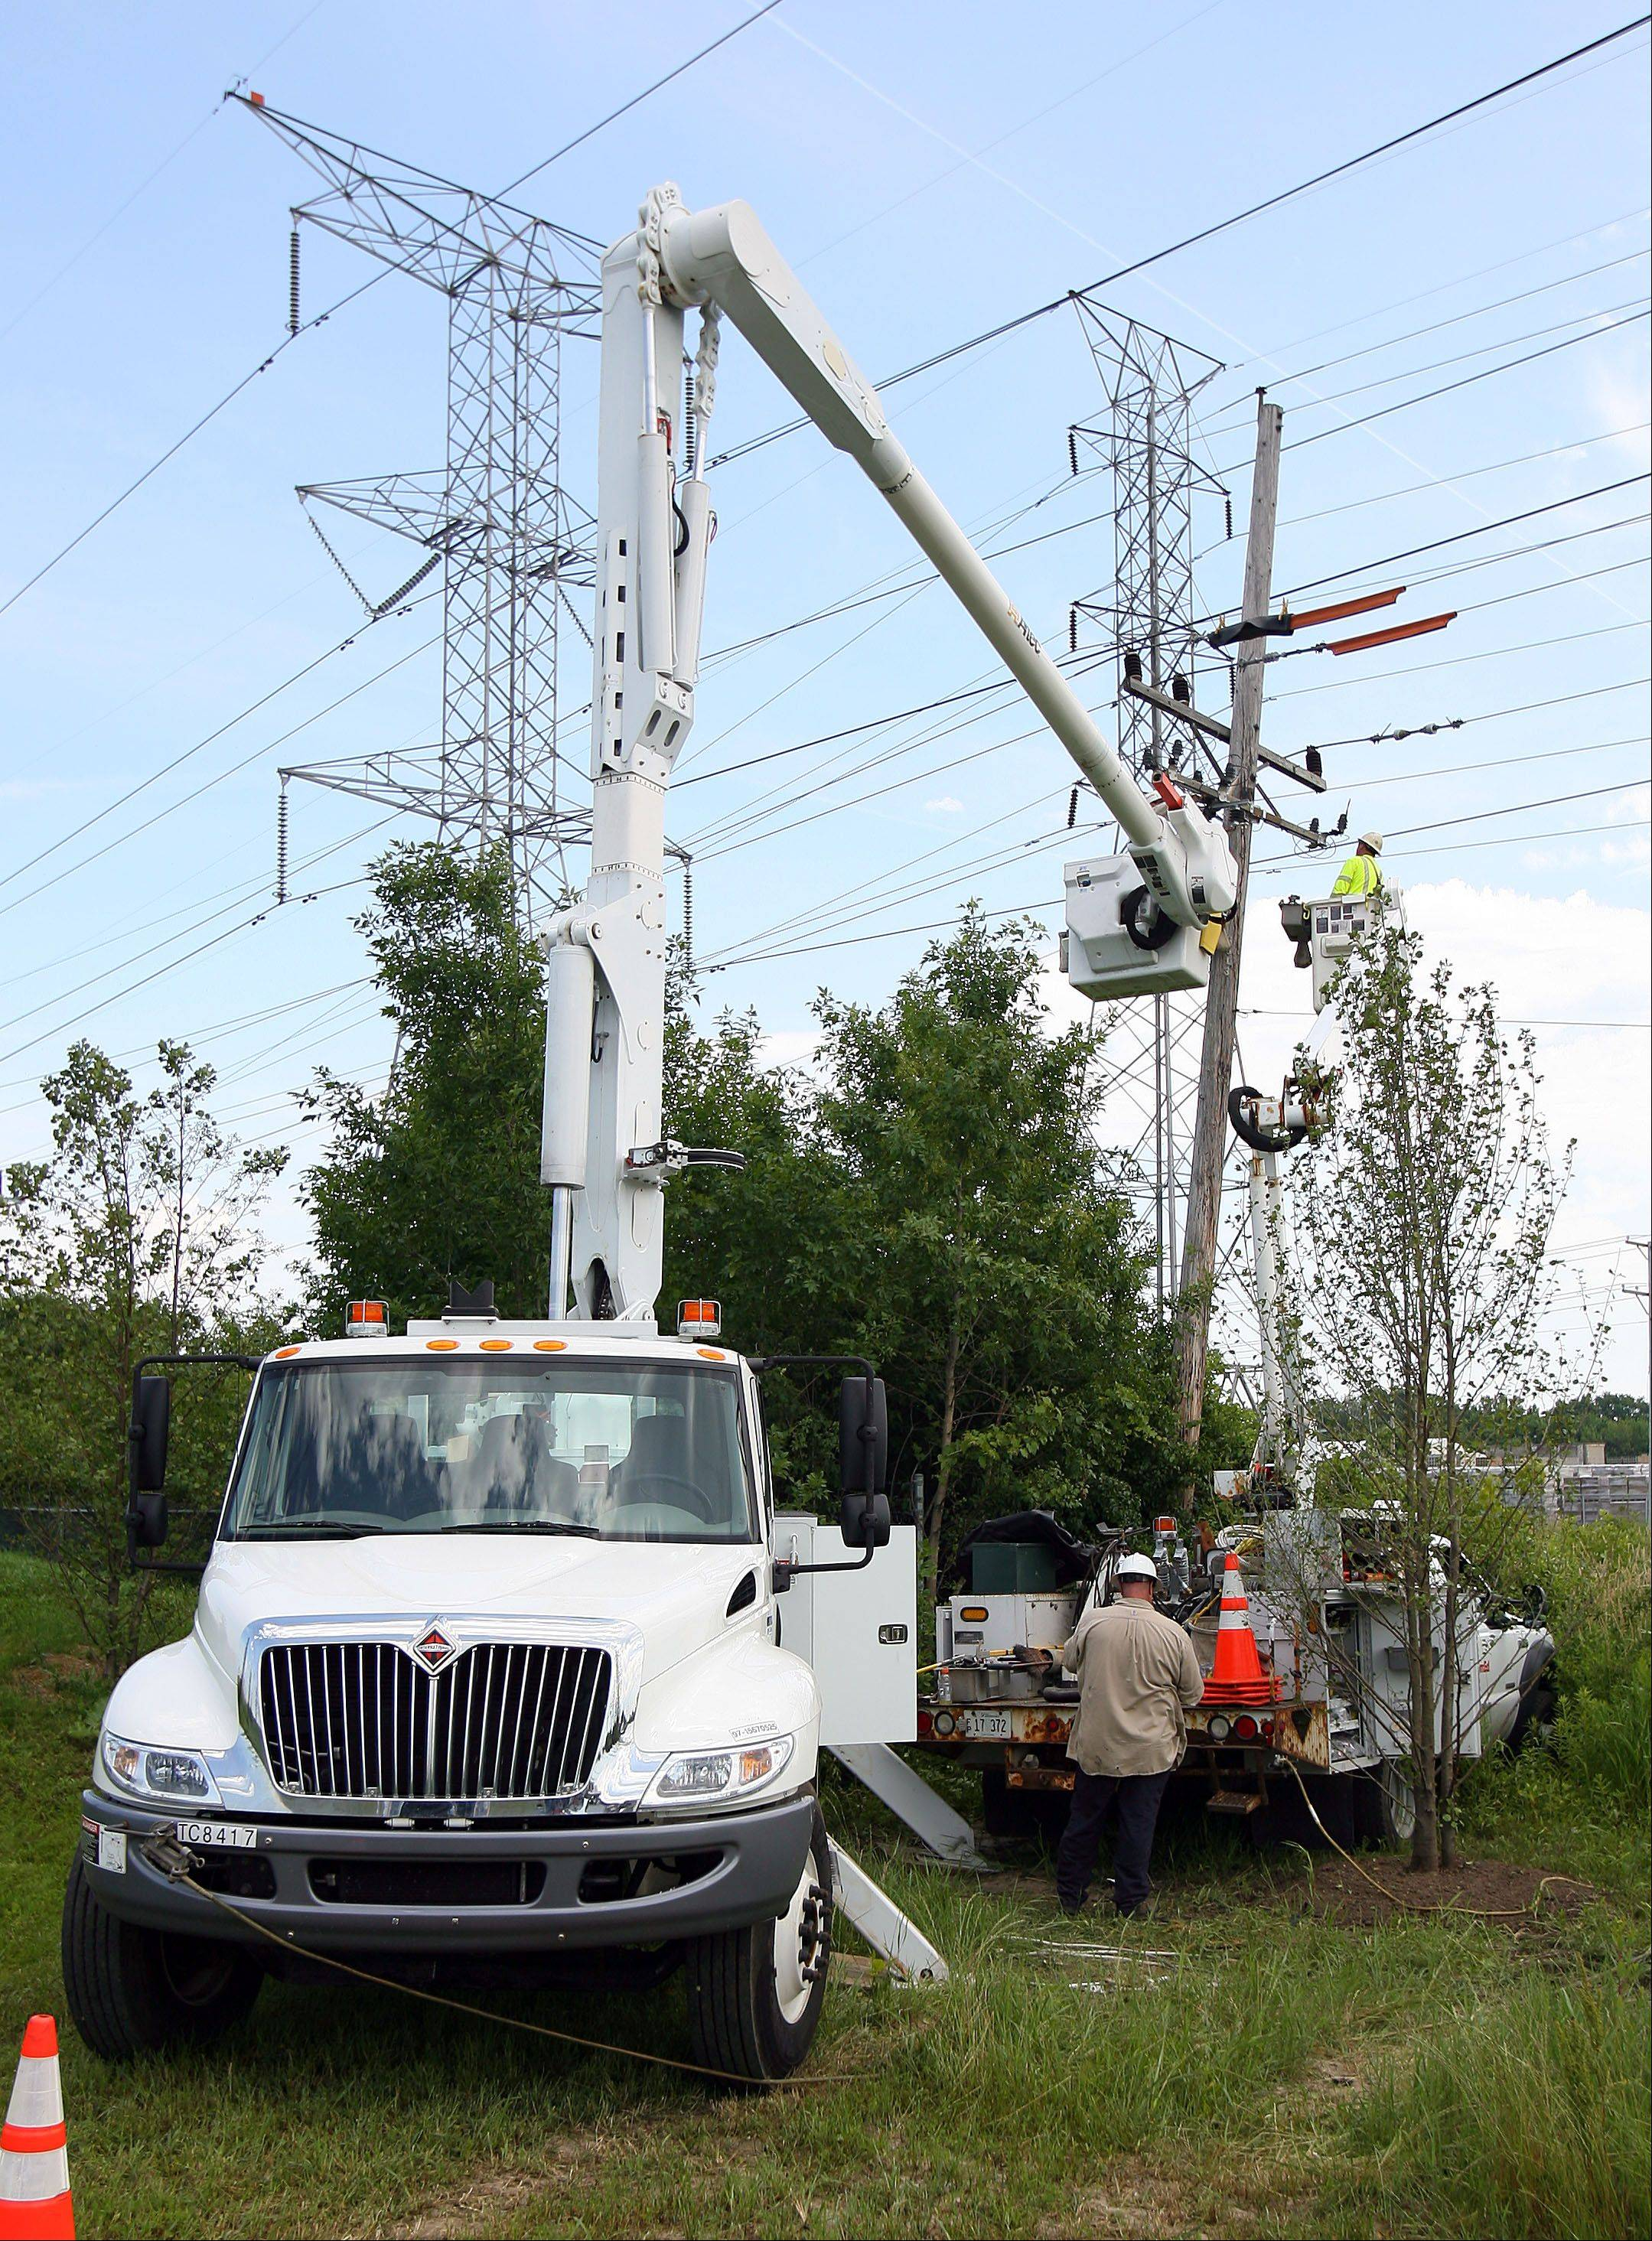 ComEd linemen work in Mundelein. Even though other companies are selling electricity to consumers, ComEd will still own and maintain the lines.